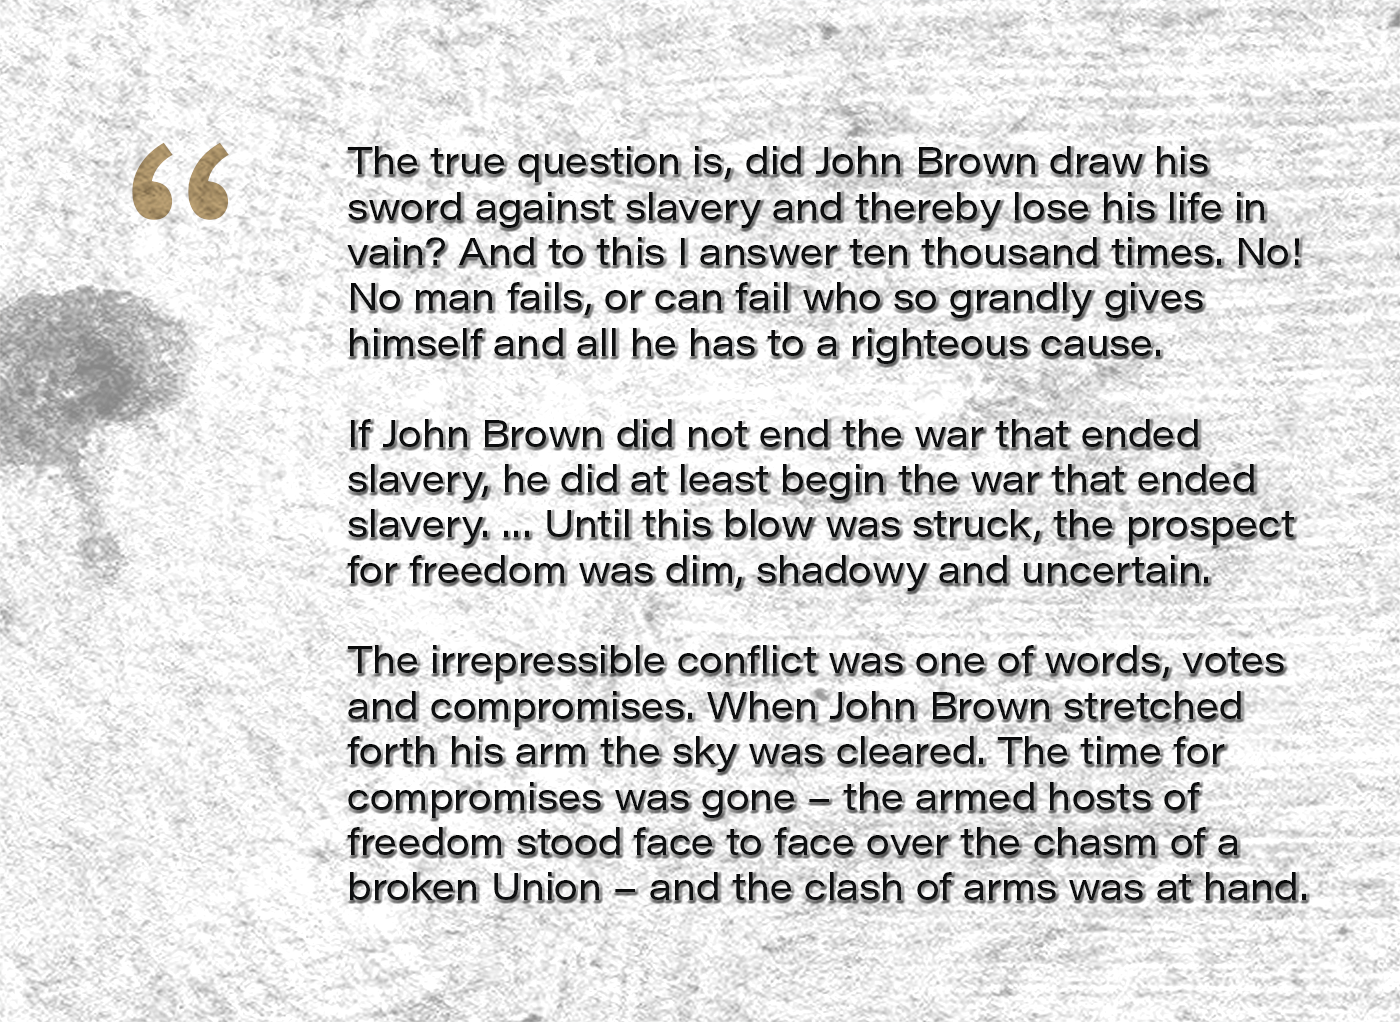 The true question is, Did John Brown draw his sword against slavery and thereby lose his life in vain? And to this I answer ten thousand times. No! No man fails, or can fail who so grandly gives himself and all he has to a righteous cause. … If John Brown did not end the war that ended slavery, he did at least begin the war that ended slavery. … Until this blow was struck, the prospect for freedom was dim, shadowy and uncertain. The irrepressible conflict was one of words, votes and compromises. When John Brown stretched forth his arm the sky was cleared. The time for compromises was gone – the armed hosts of freedom stood face to face over the chasm of a broken Union – and the clash of arms was at hand.